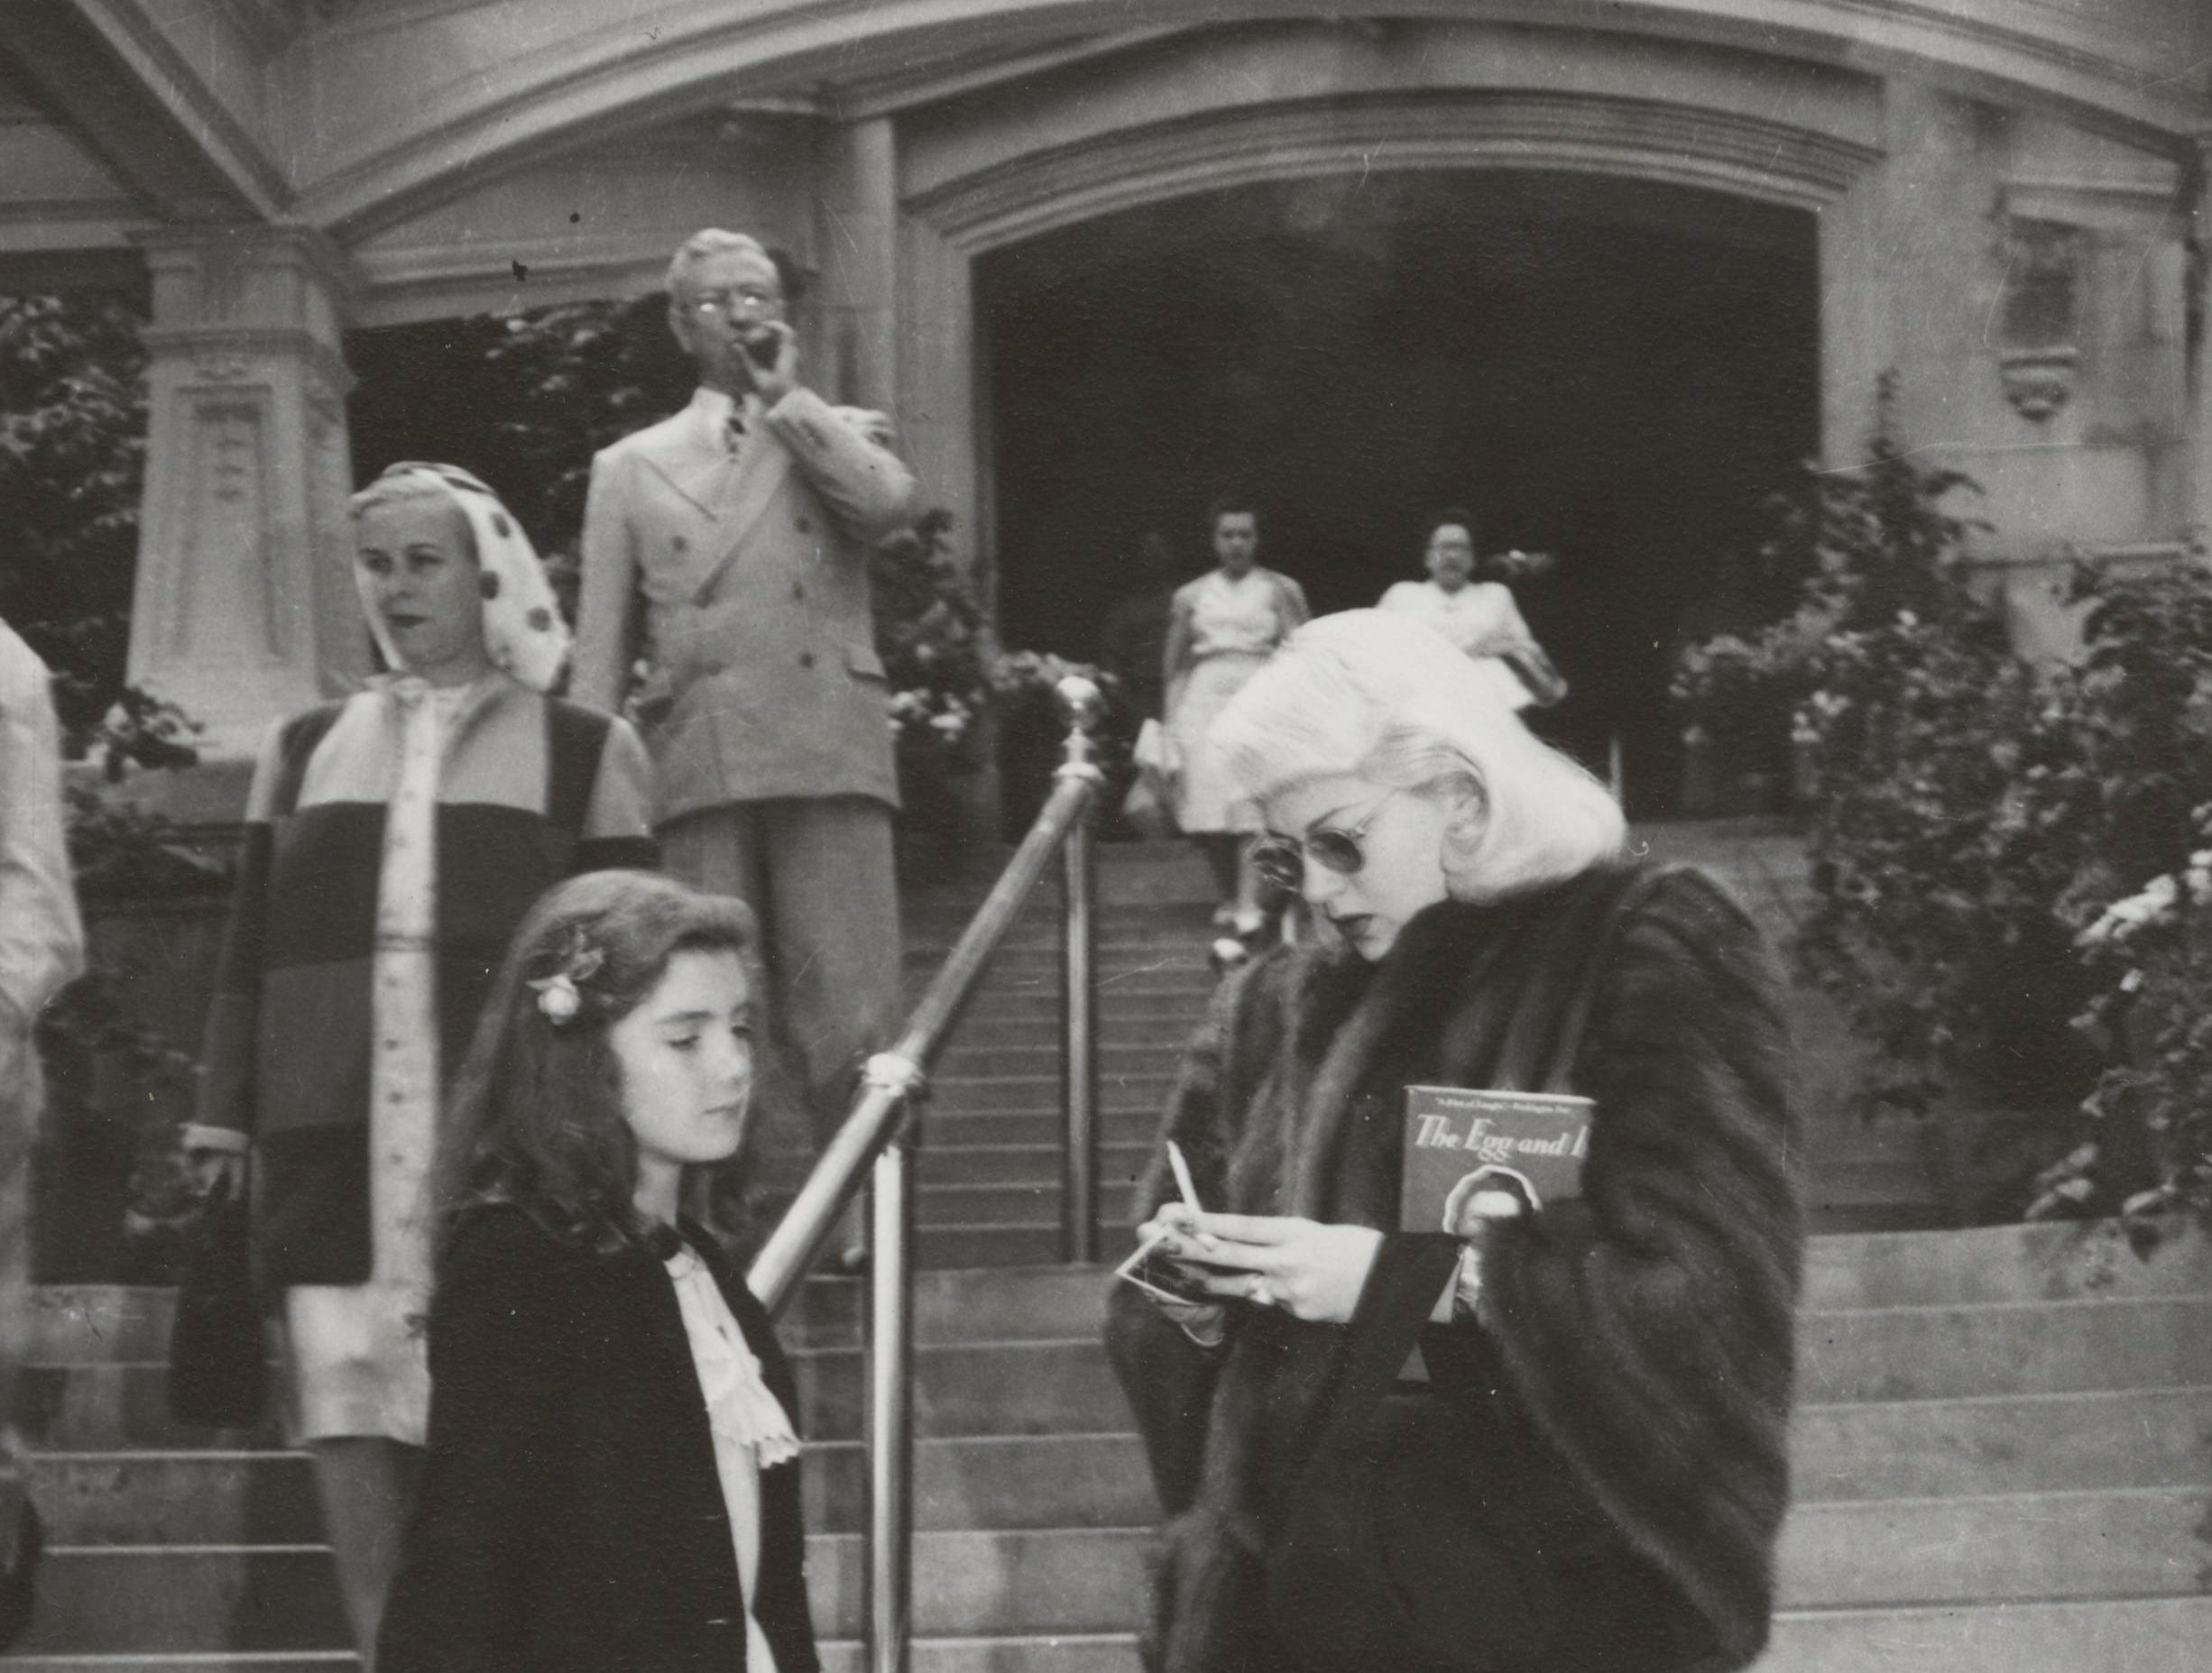 Actress Lana Turner gives an autograph to a young girl at the entrance to the French Lick Springs Hotel in 1945.